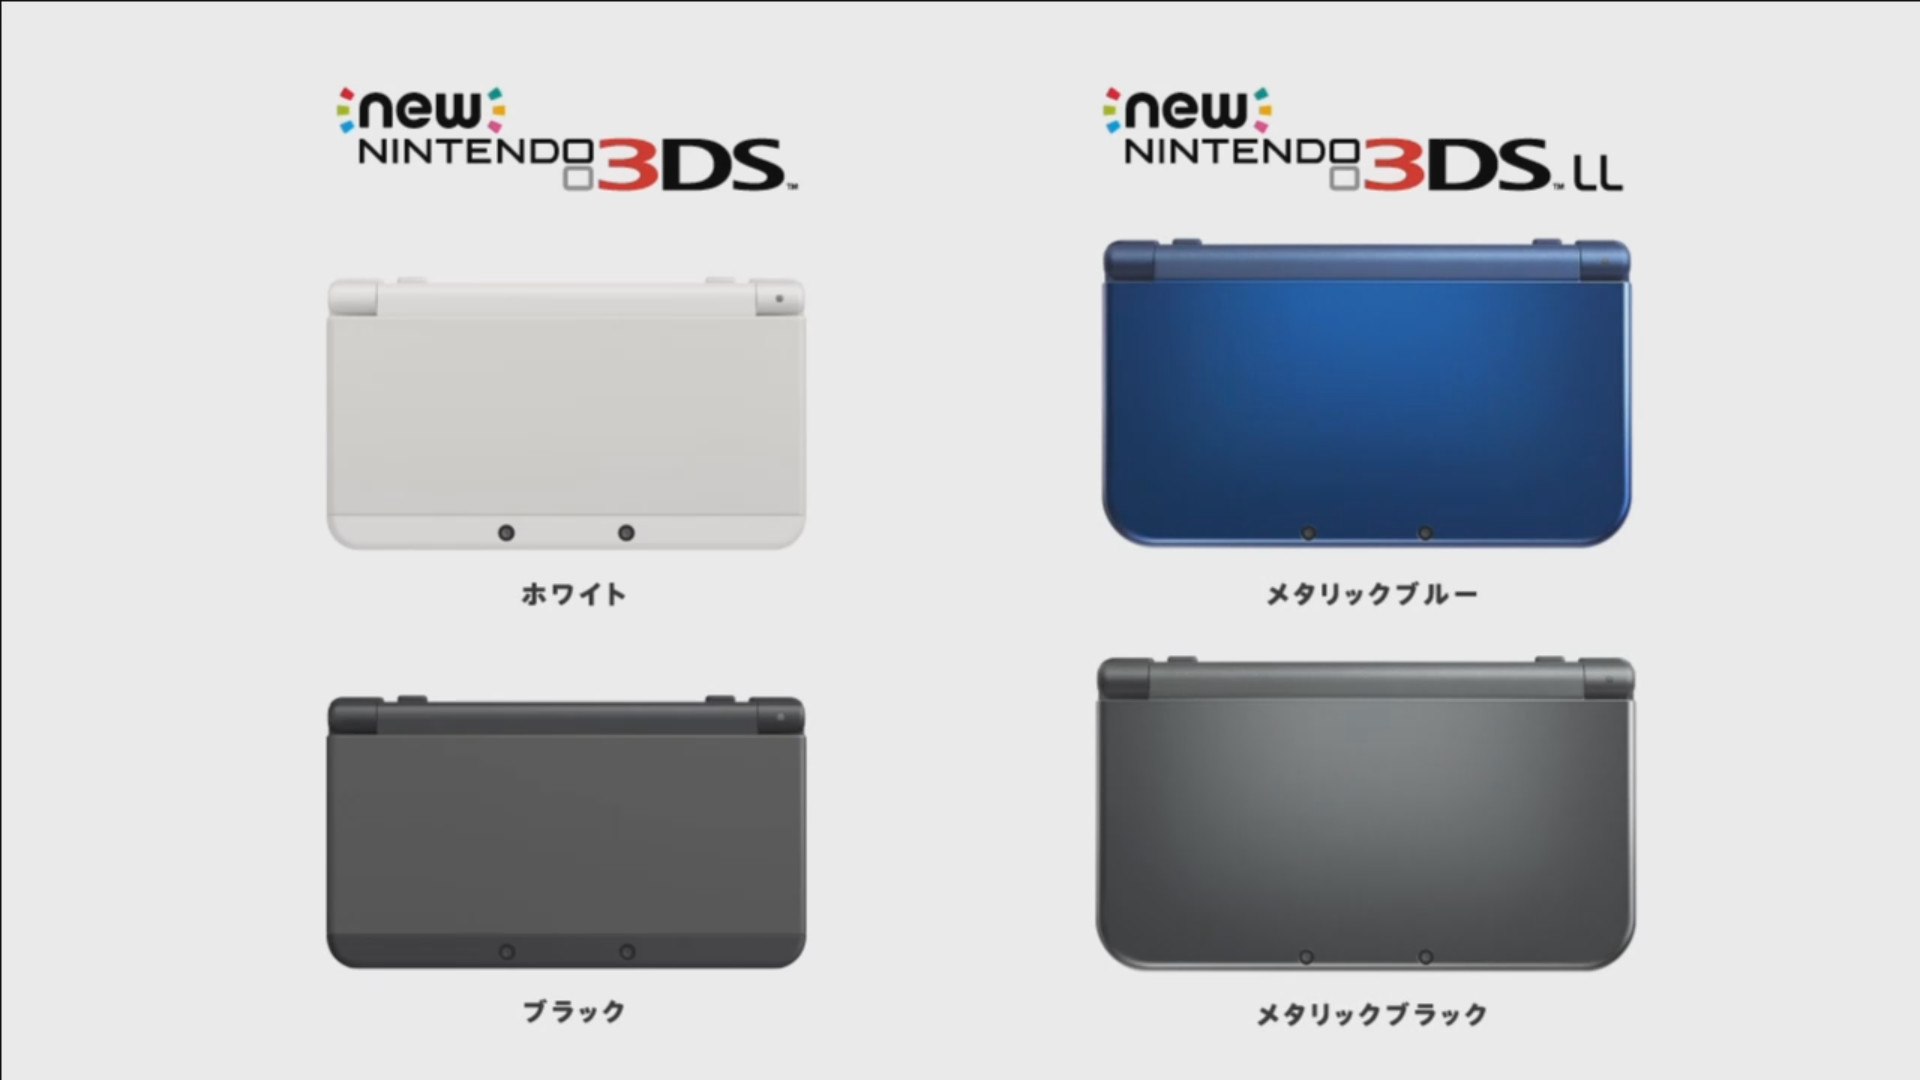 The New Nintendo 3DS is coming soon!